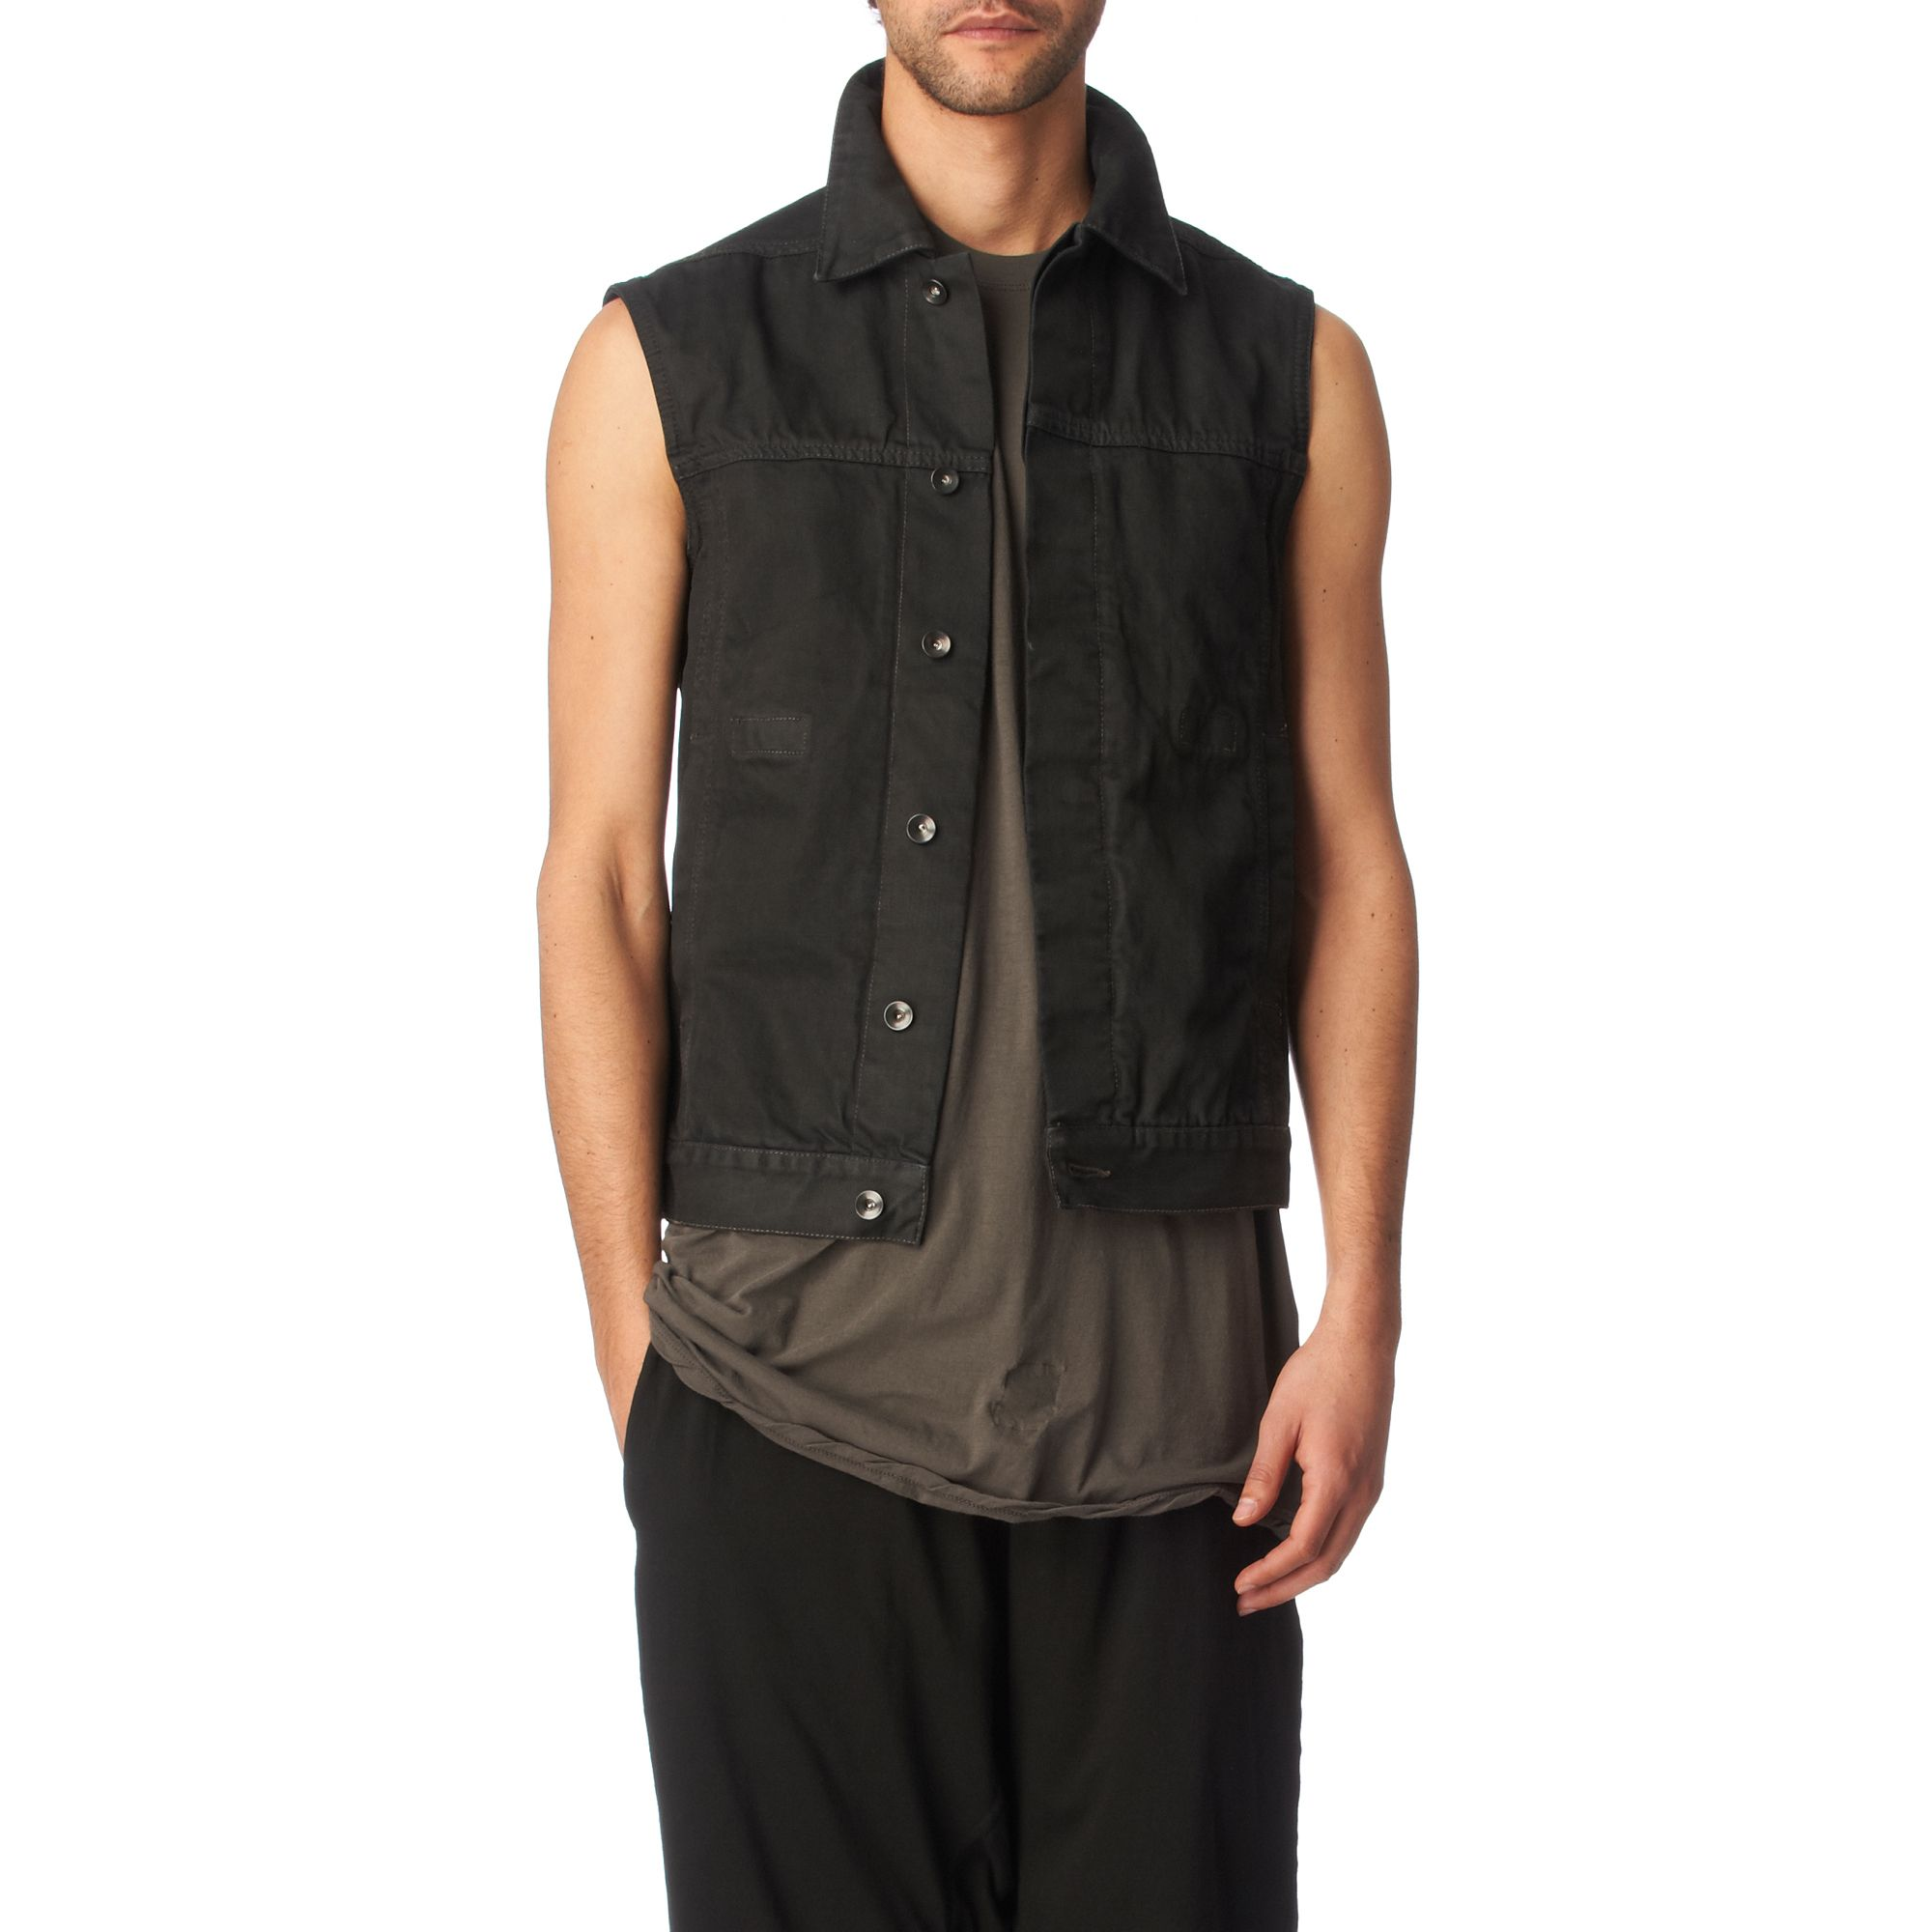 Find great deals on eBay for black denim sleeveless jacket. Shop with confidence.